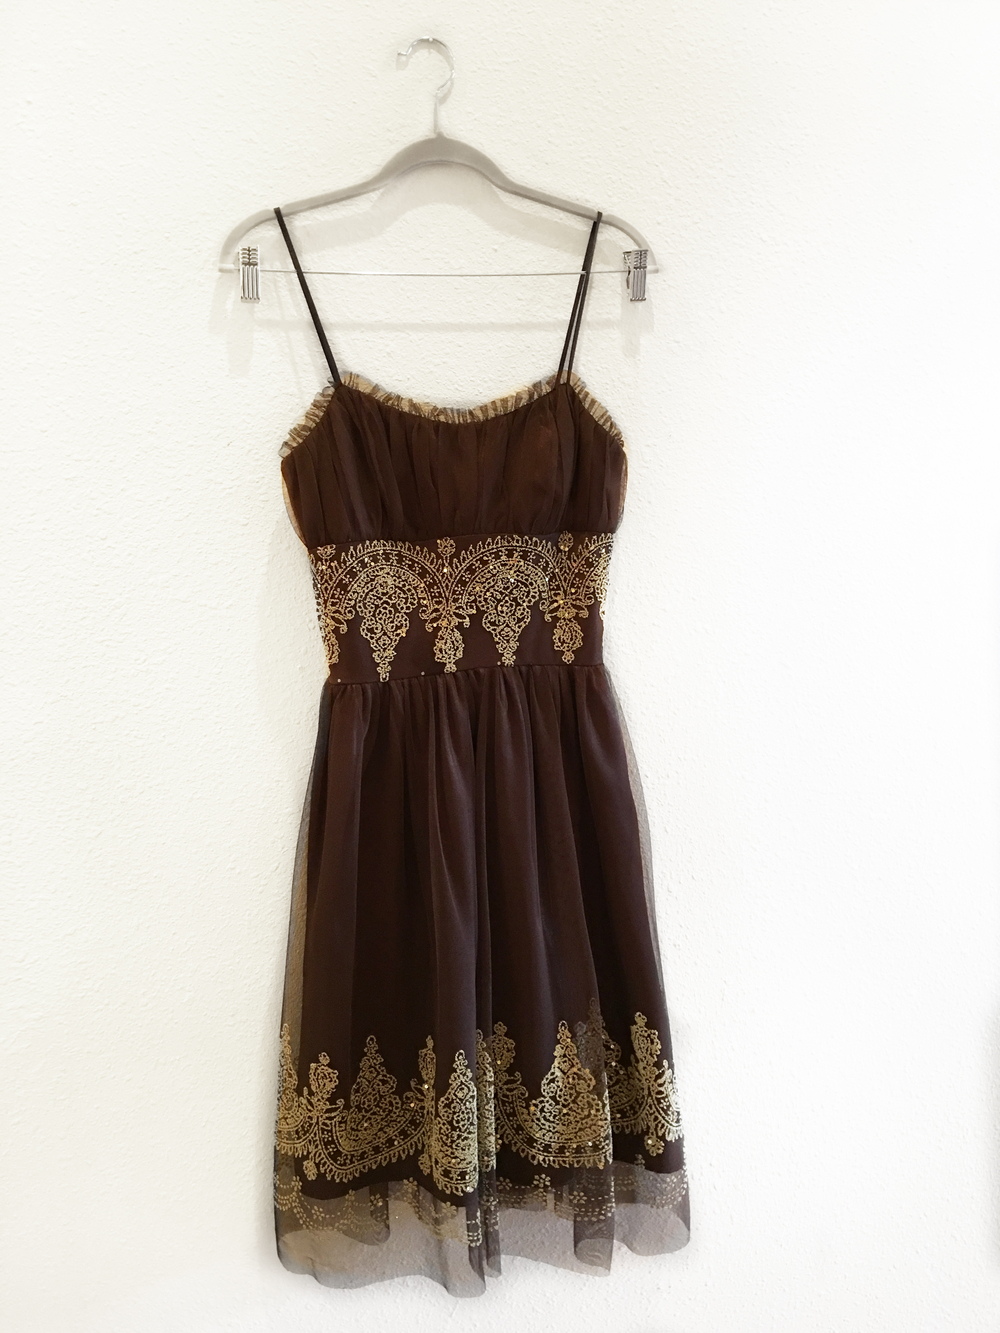 Dress - Brown Tulle + Gold Embellishment